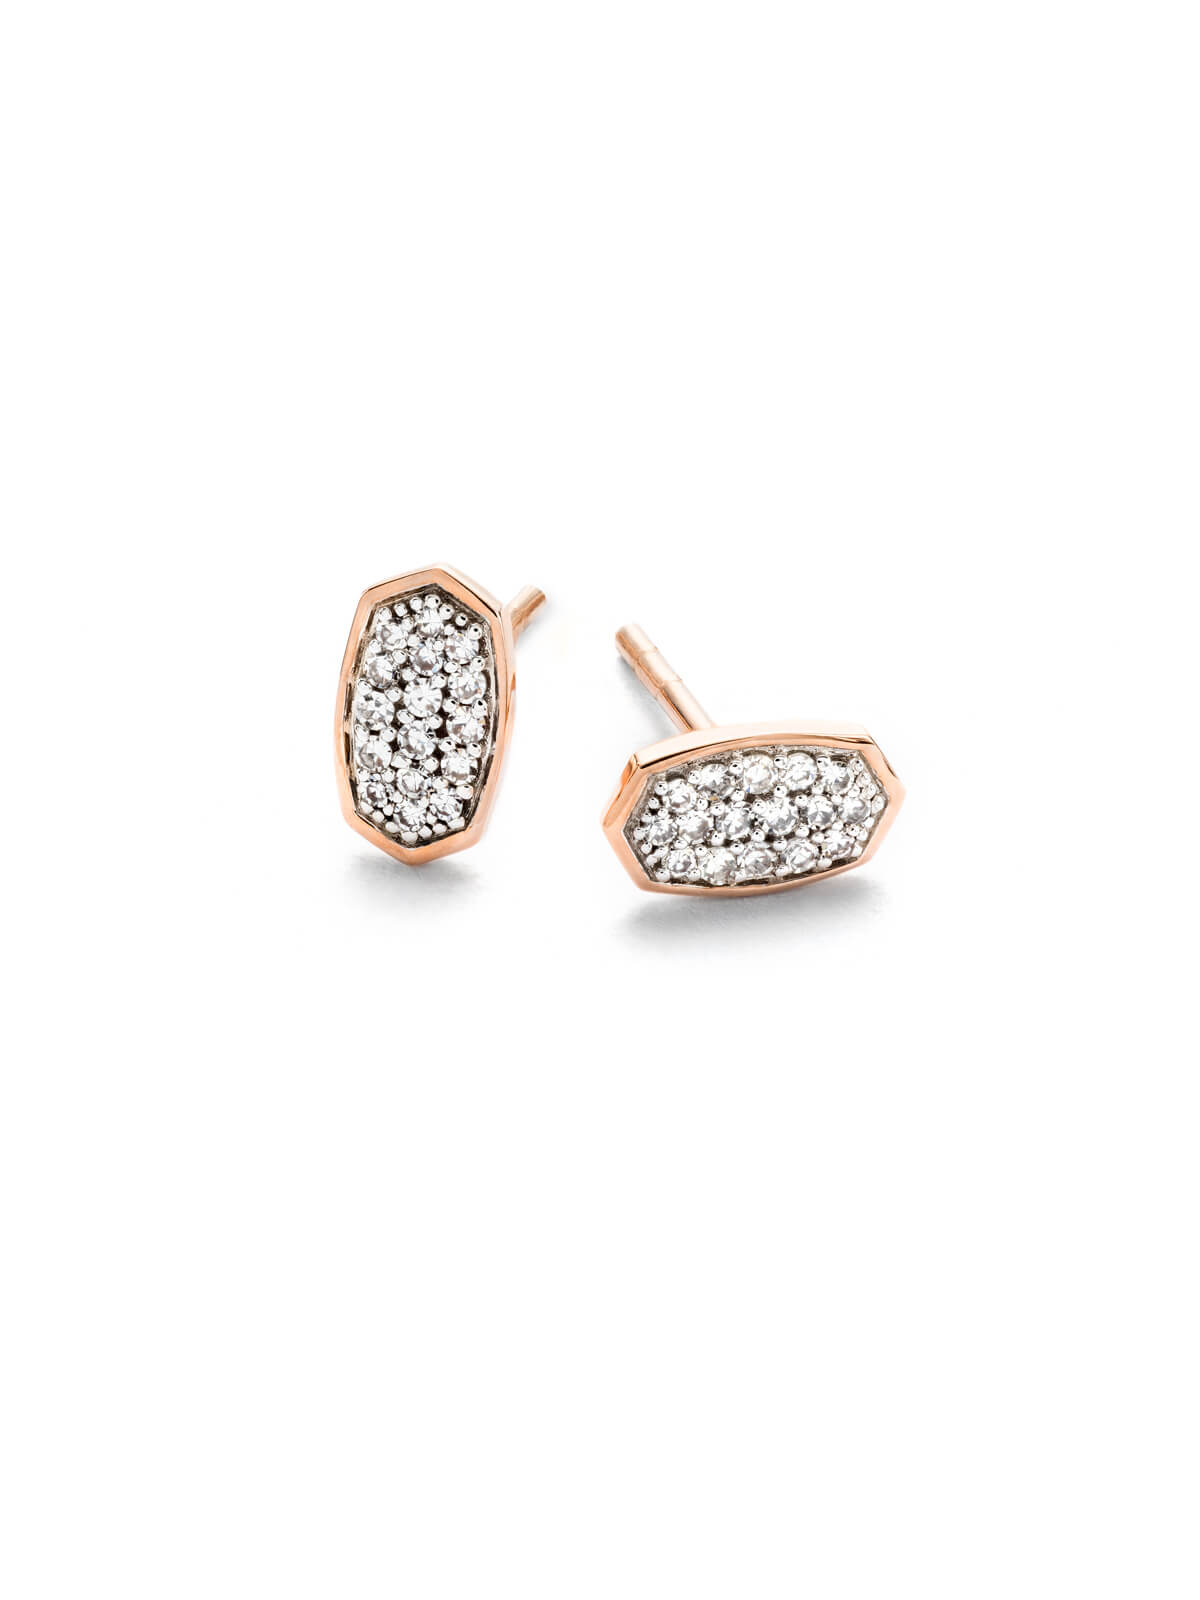 Gypsy Stud Earrings in White Diamond and 14k Rose Gold